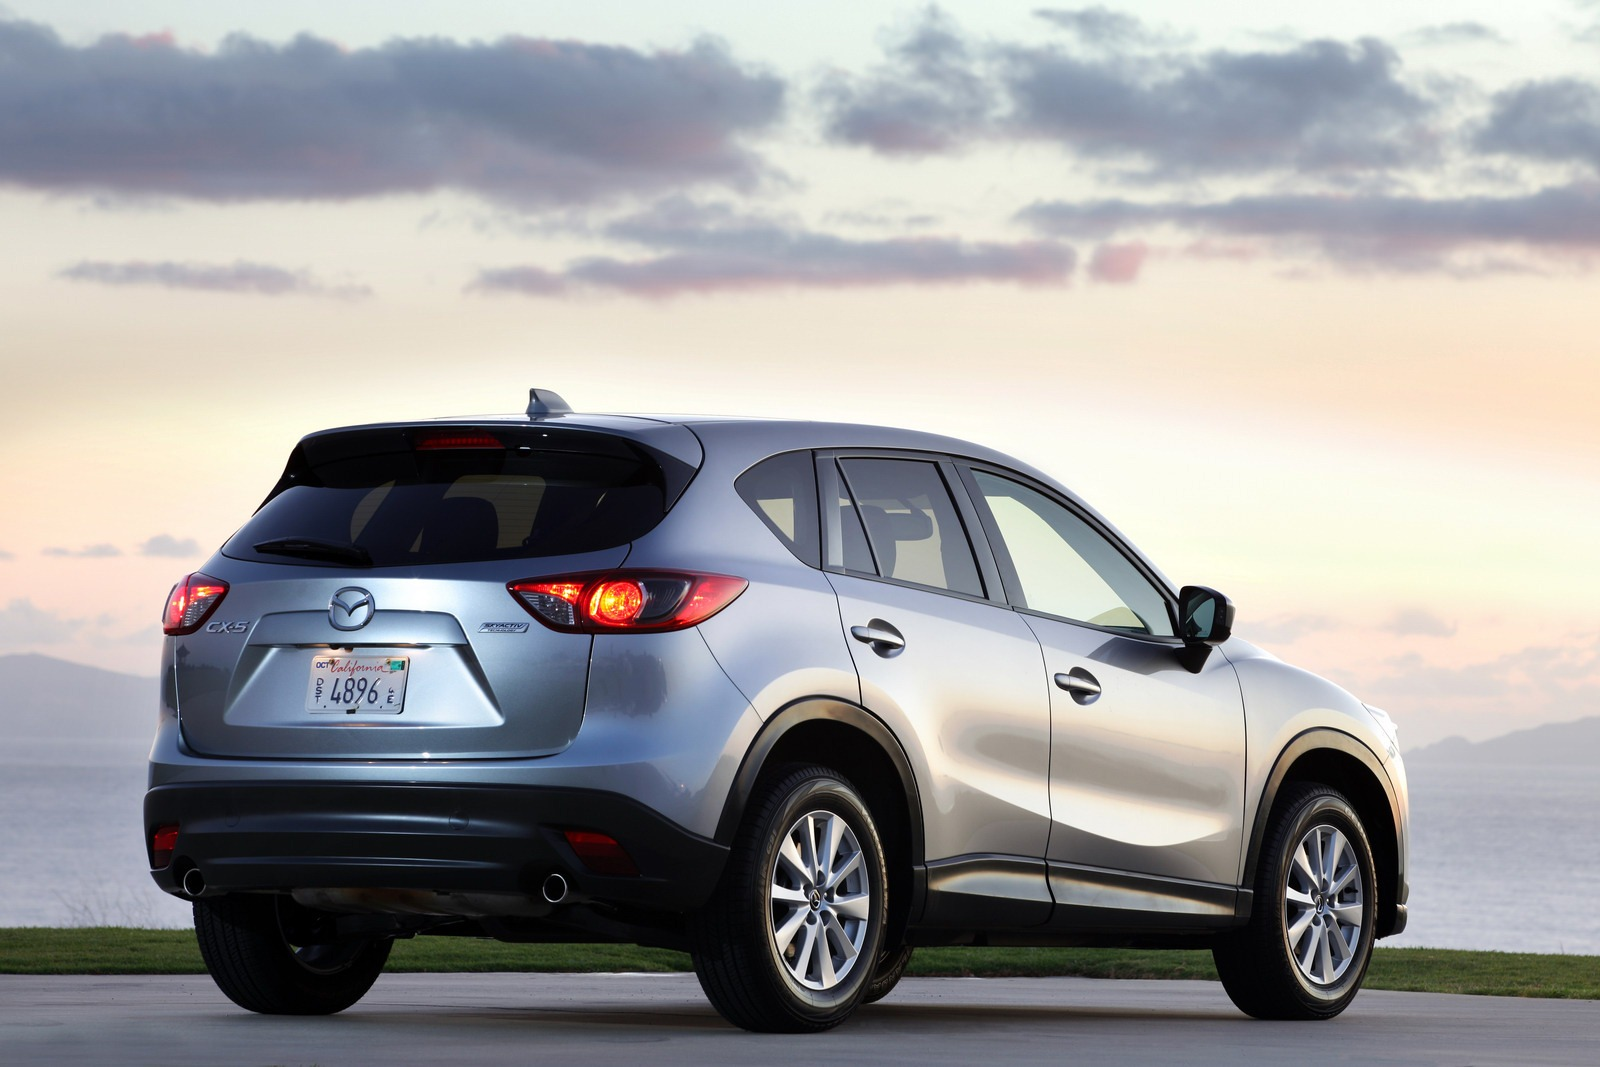 2013 Mazda CX 5 Crossover 1 2013 Mazda CX 5 Crossover   Available with a Compact Technical Tune up